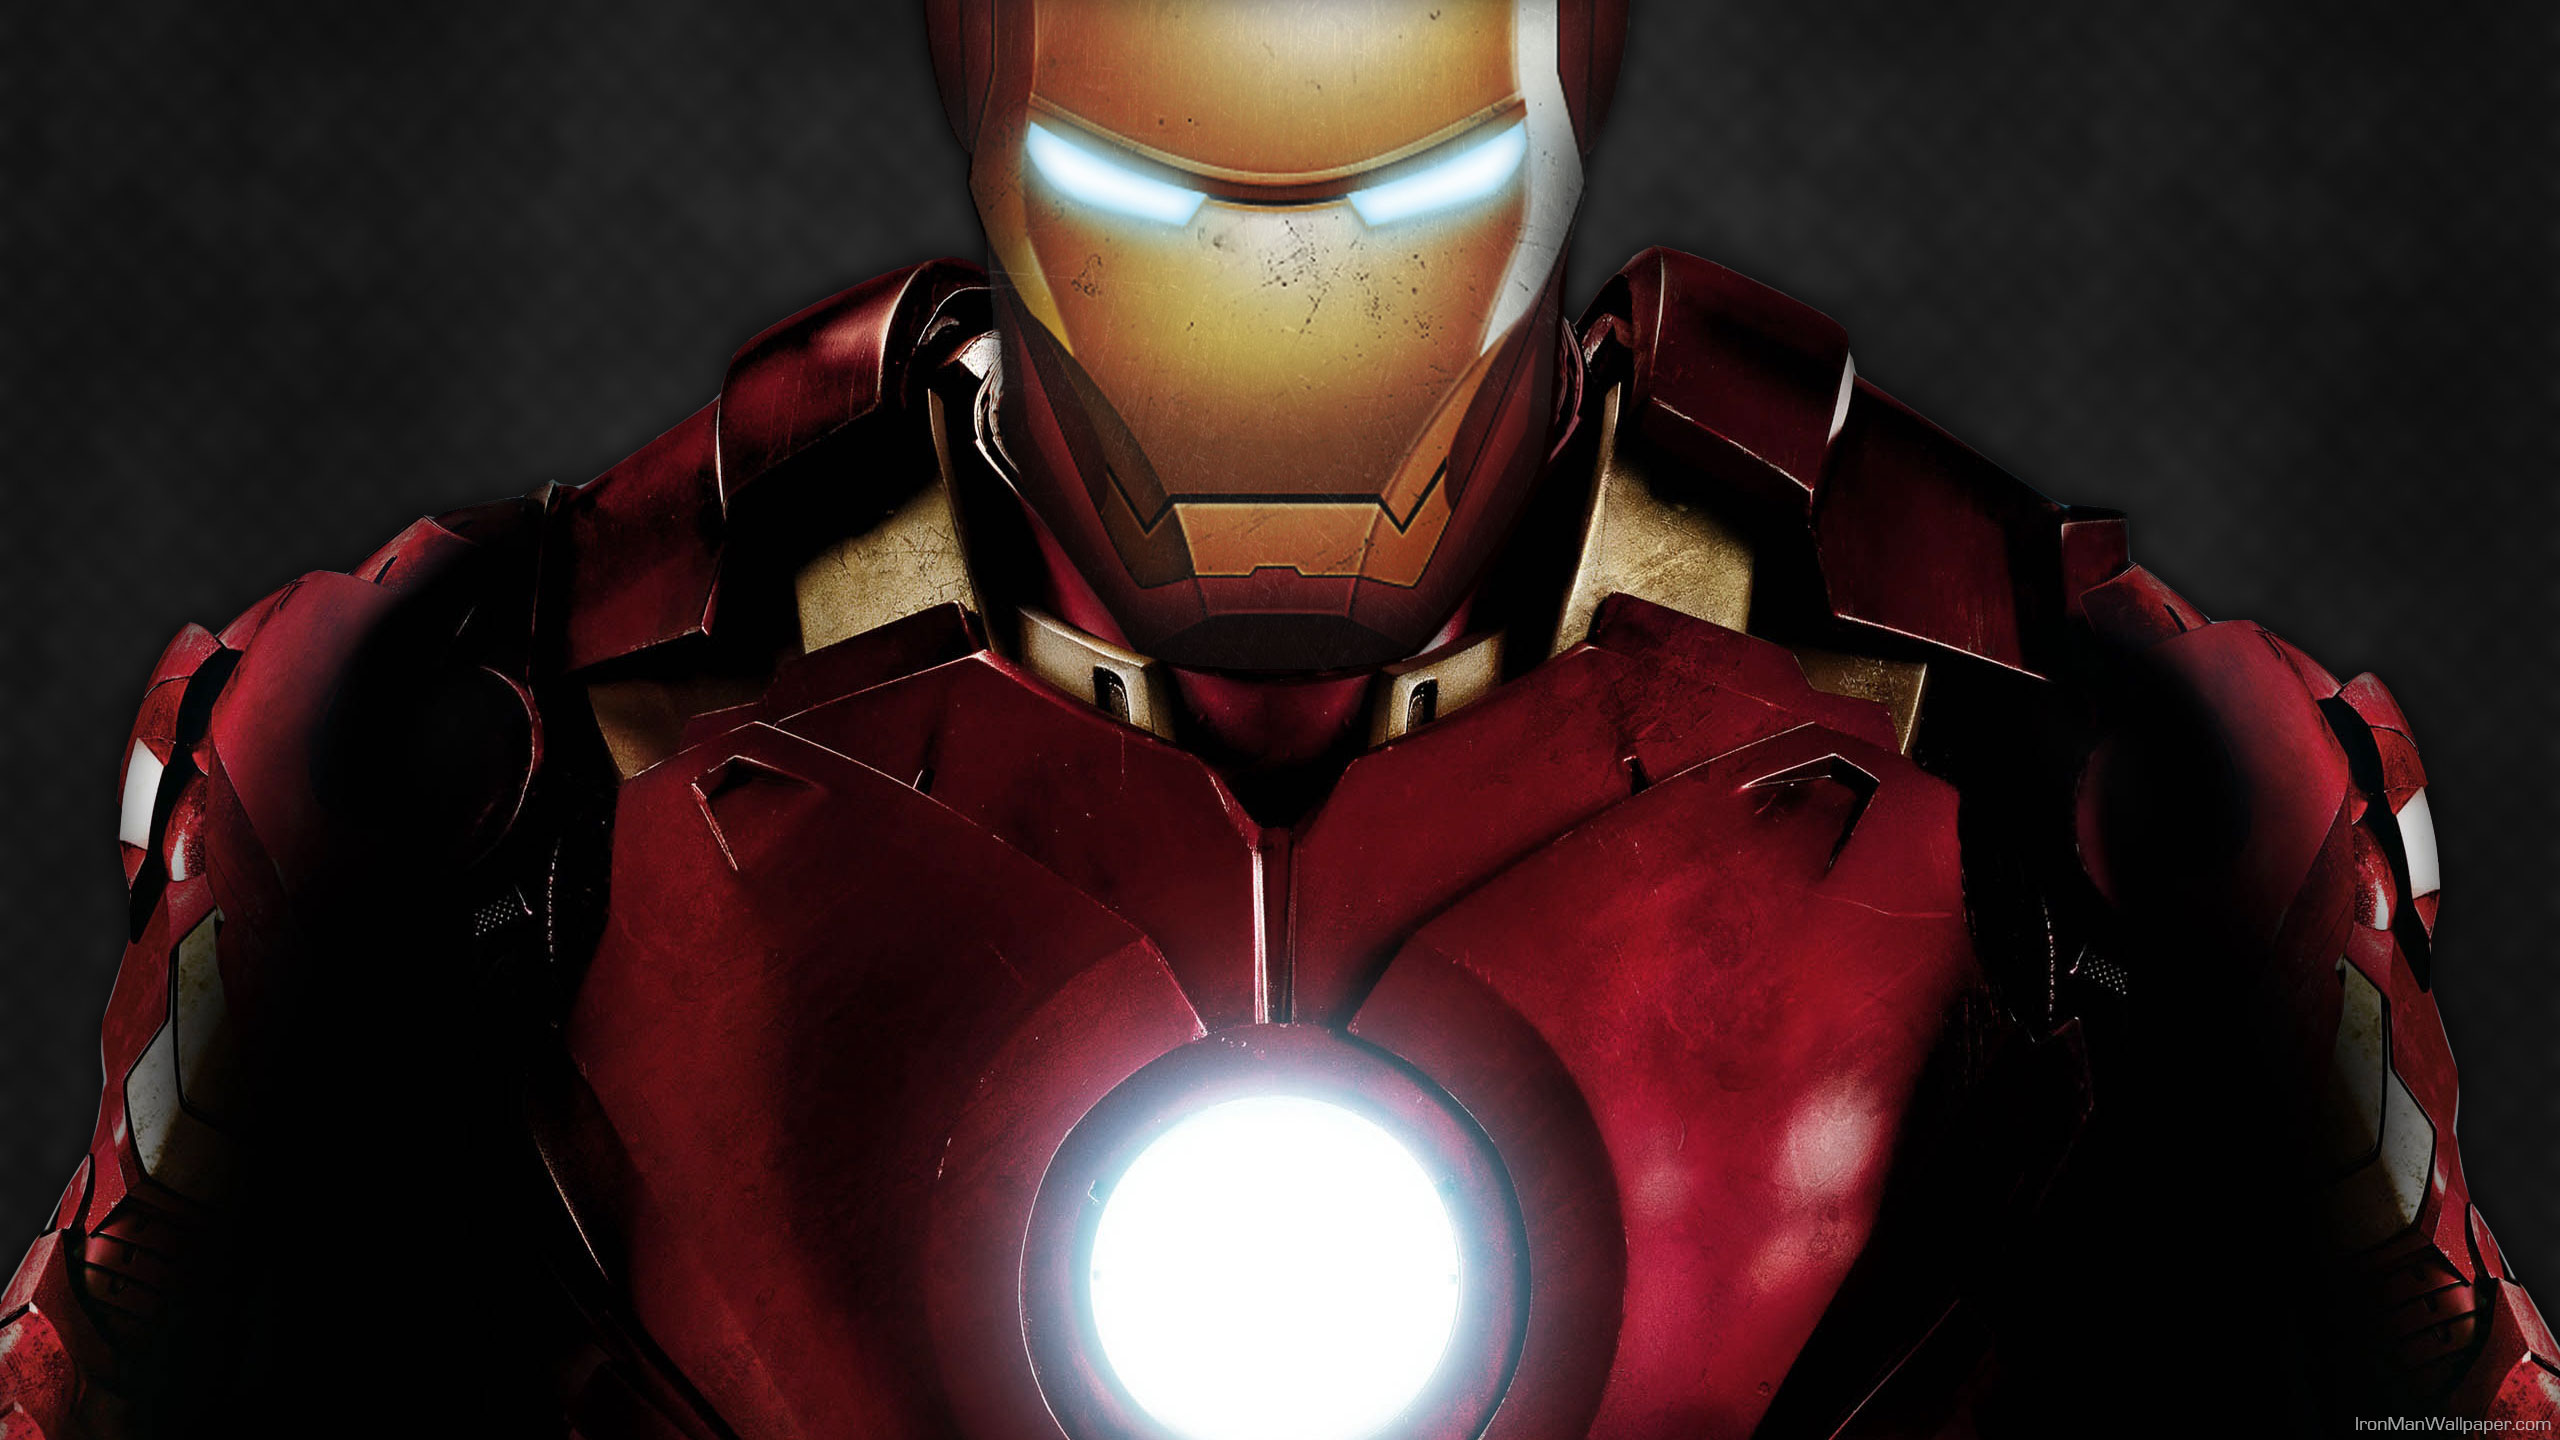 Cool iron Man phone wallpapers Iphone Collection of Cool